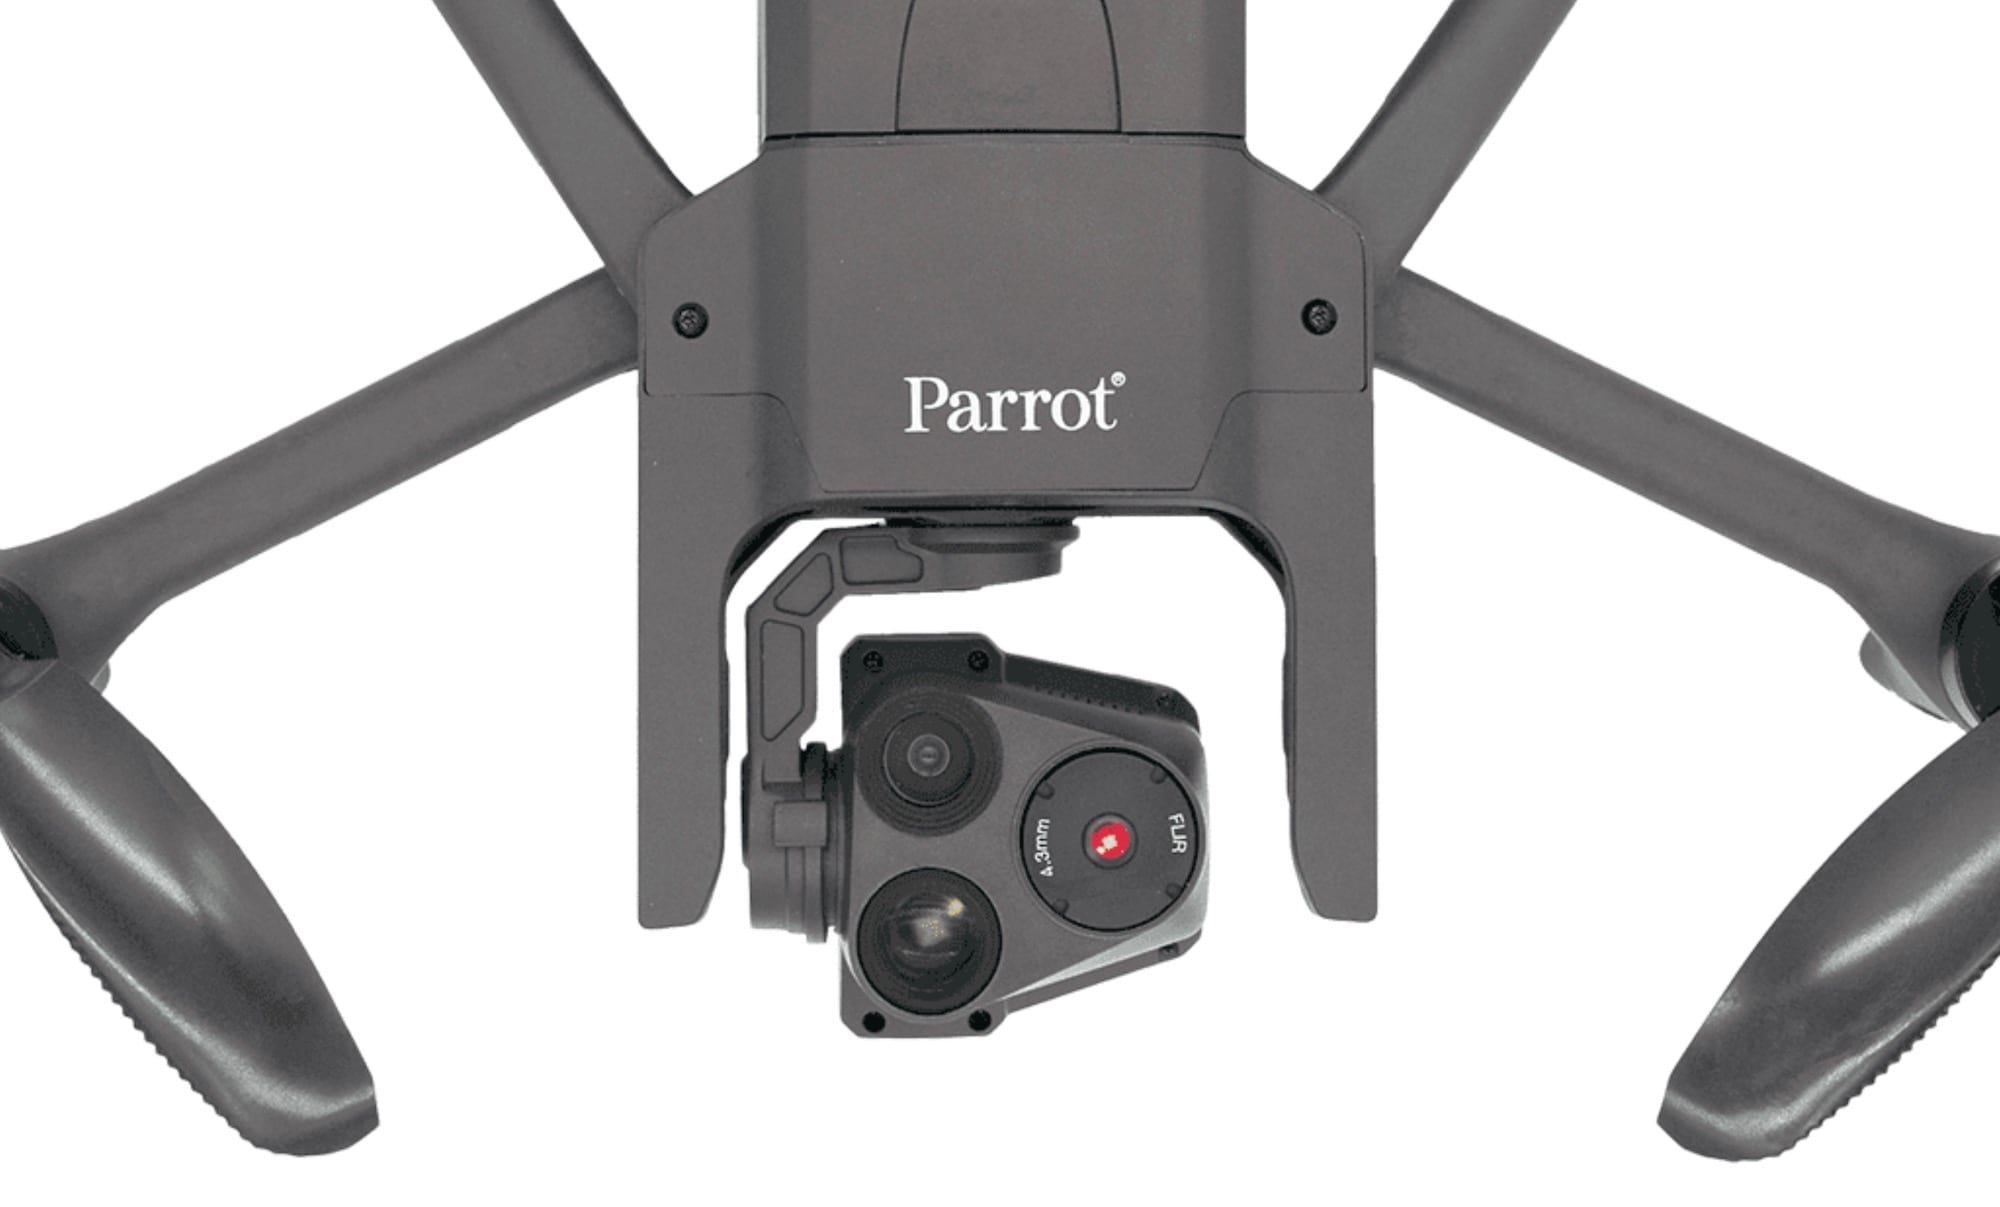 Parrot partners with WISeKey to define the future of drone security - Parrot selected by the U.S. Defense Innovation Unit as a major drone supplier